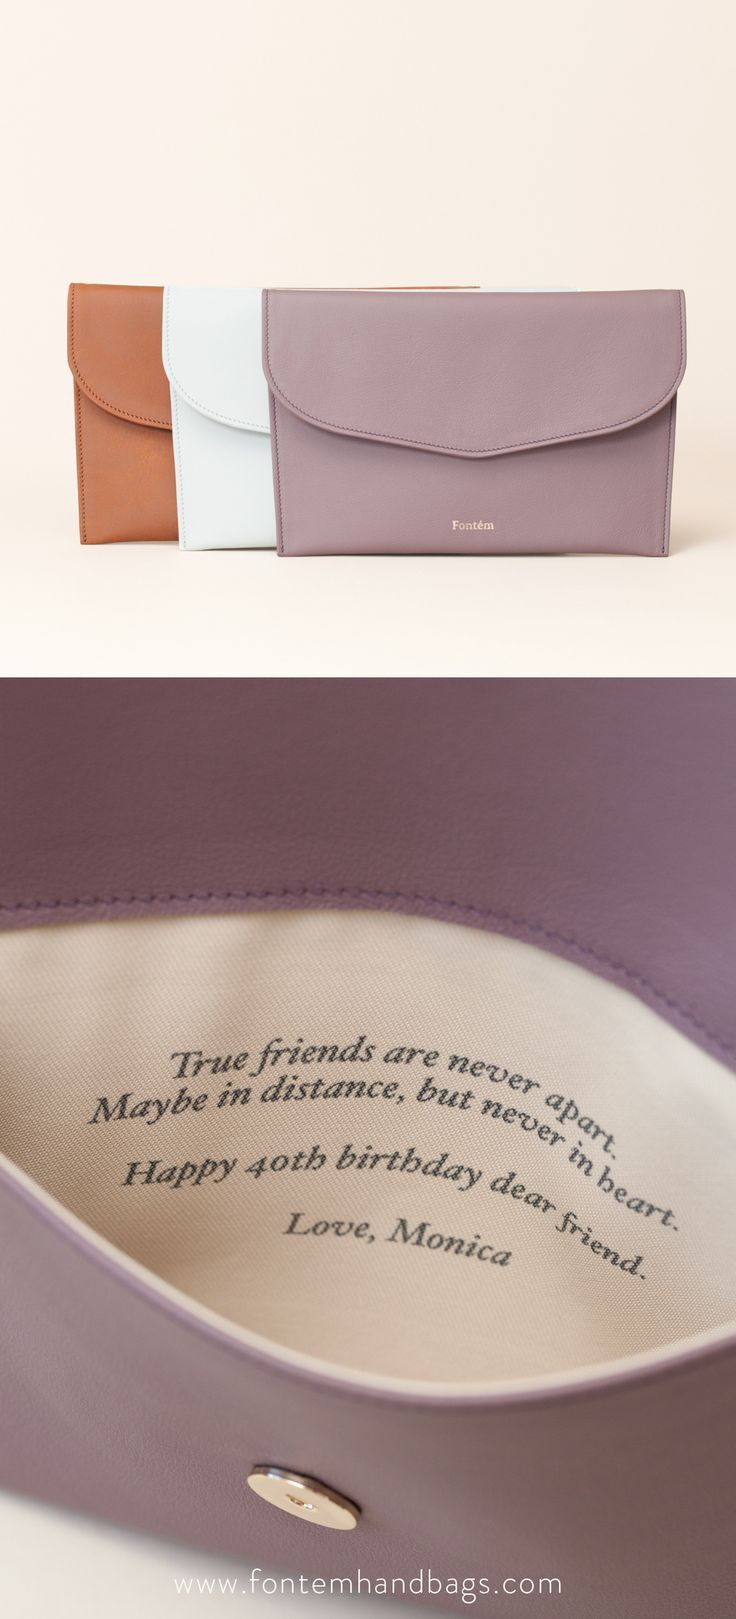 50th birthday gifts for best friend, Unique birthday gifts for women, 30th 40th 60th, Personalized best friend birthday gift, Leather clutch